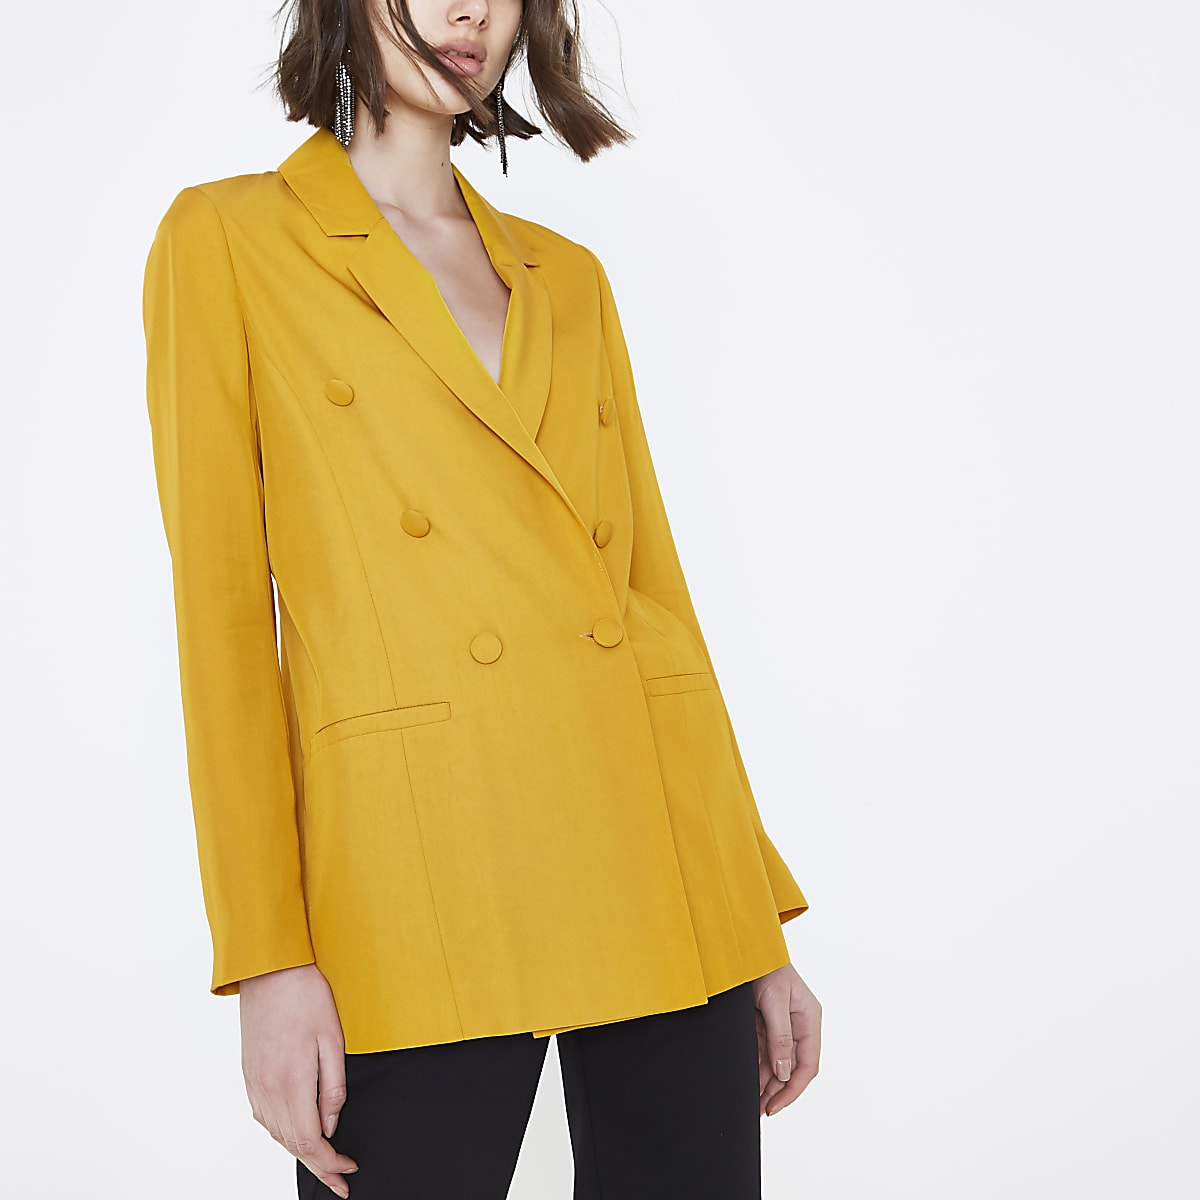 Yellow double breasted longline blazer